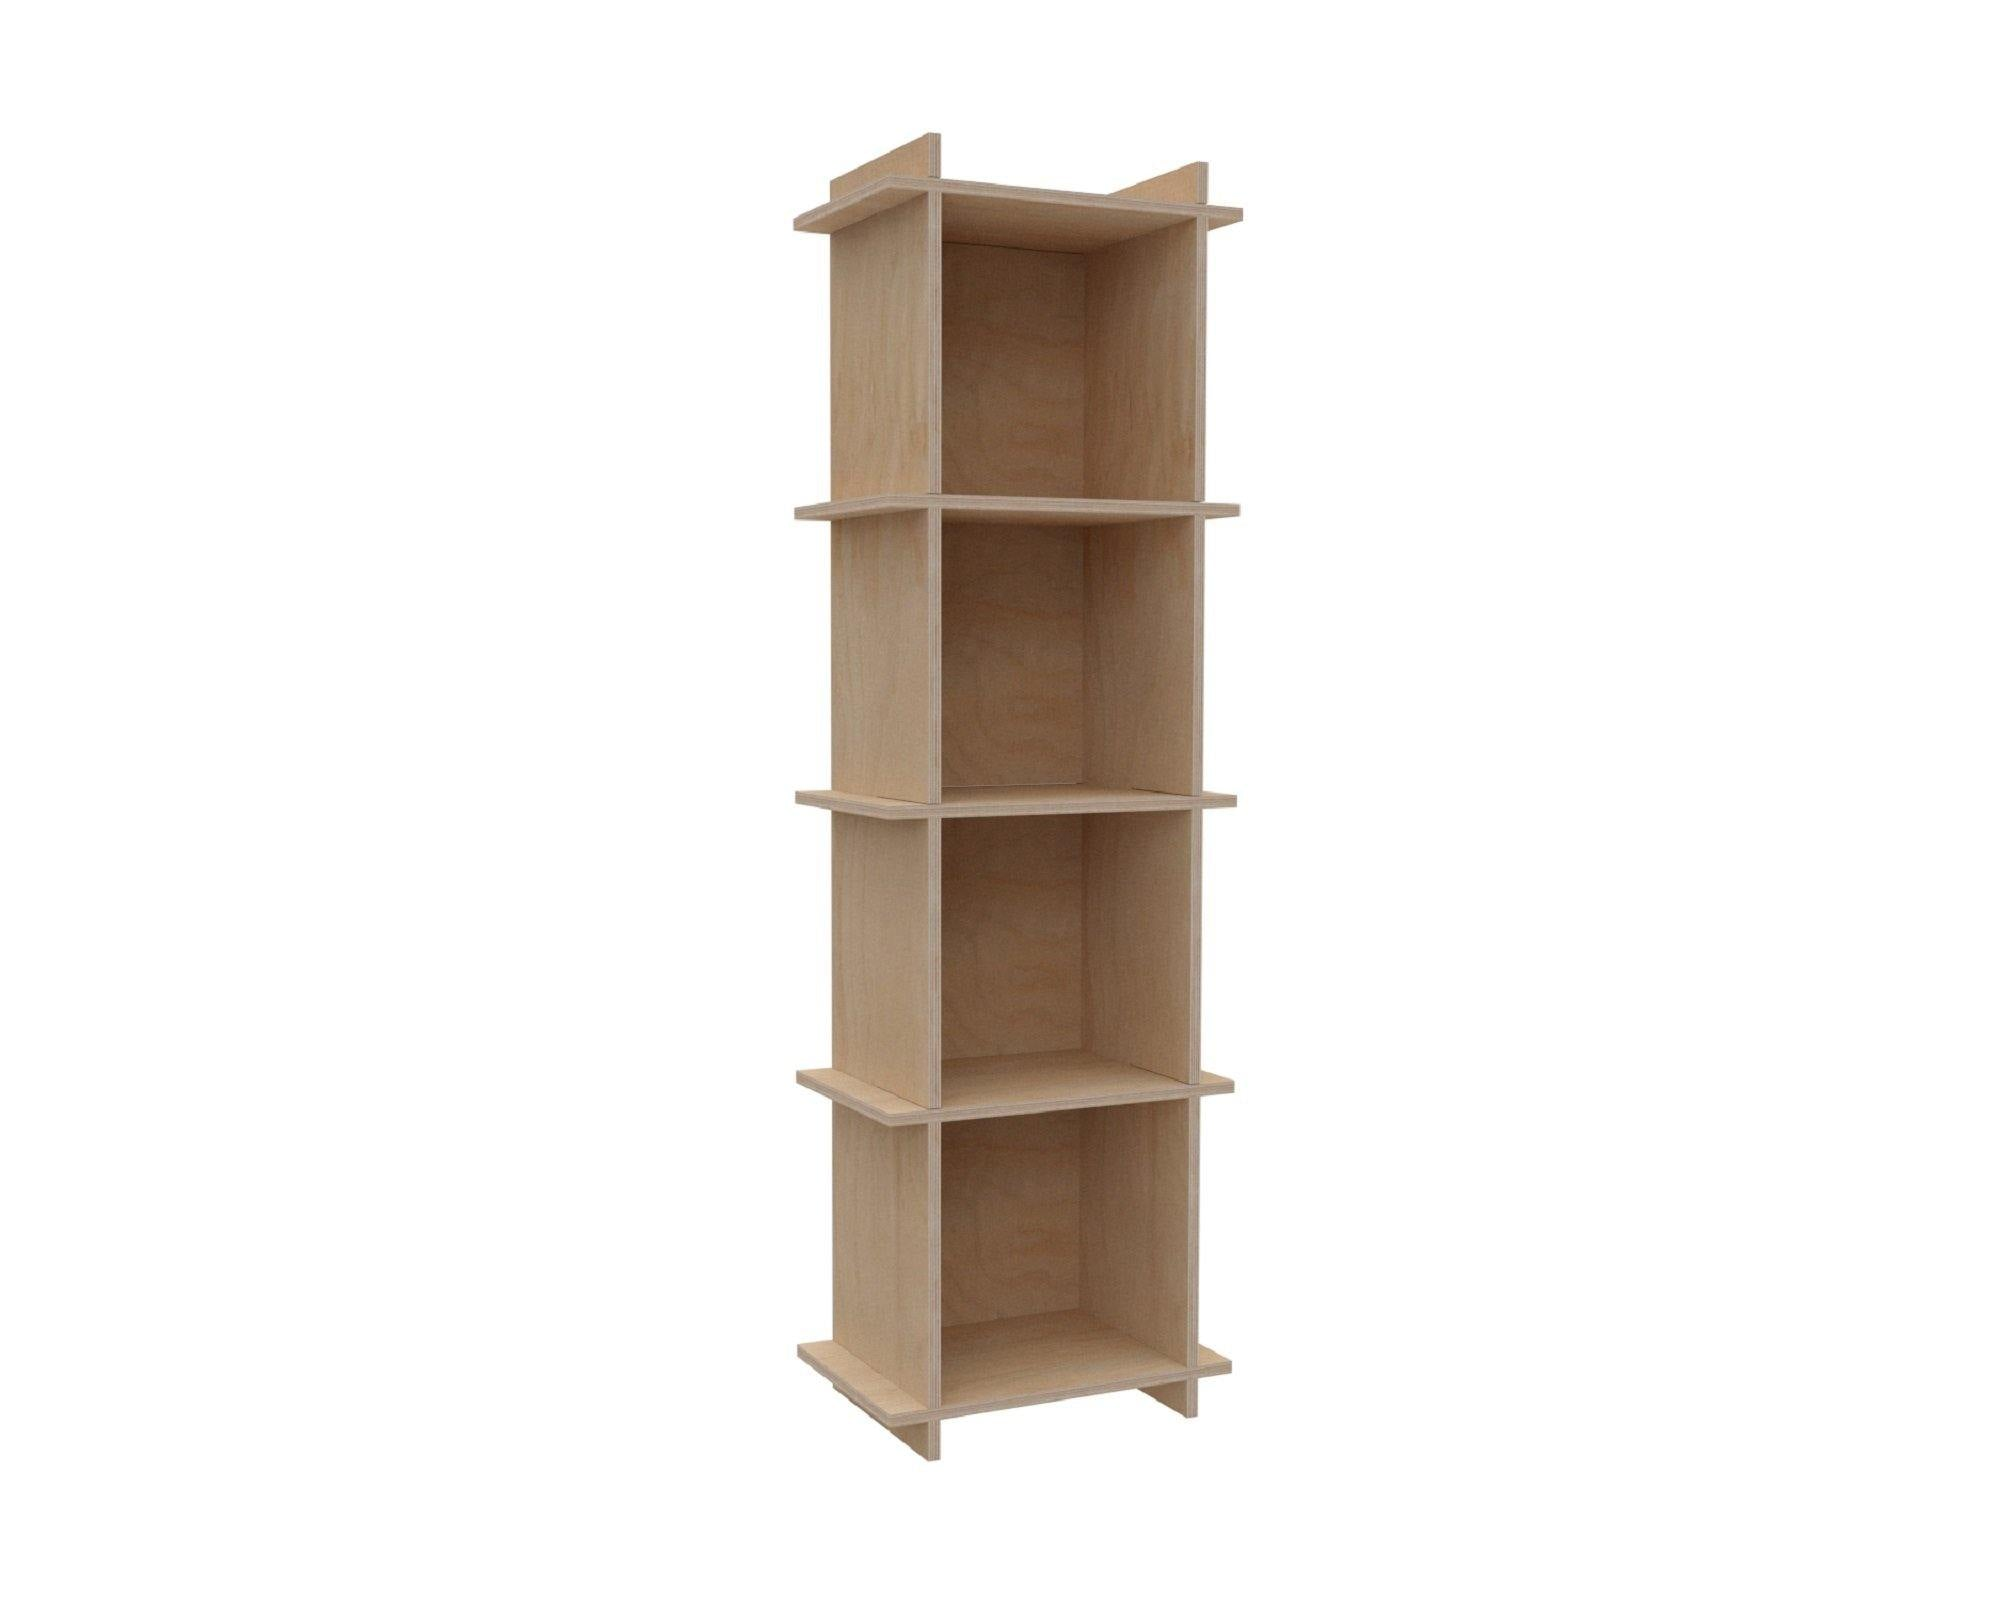 "Plywood Record Box Bookshelf	-	1x4	33cm / 13"" Box	-	46x149,5x33cm	/	18""x58.8""x13"" - skleia.com - handmade ergonomic ecologic plywood furniture"